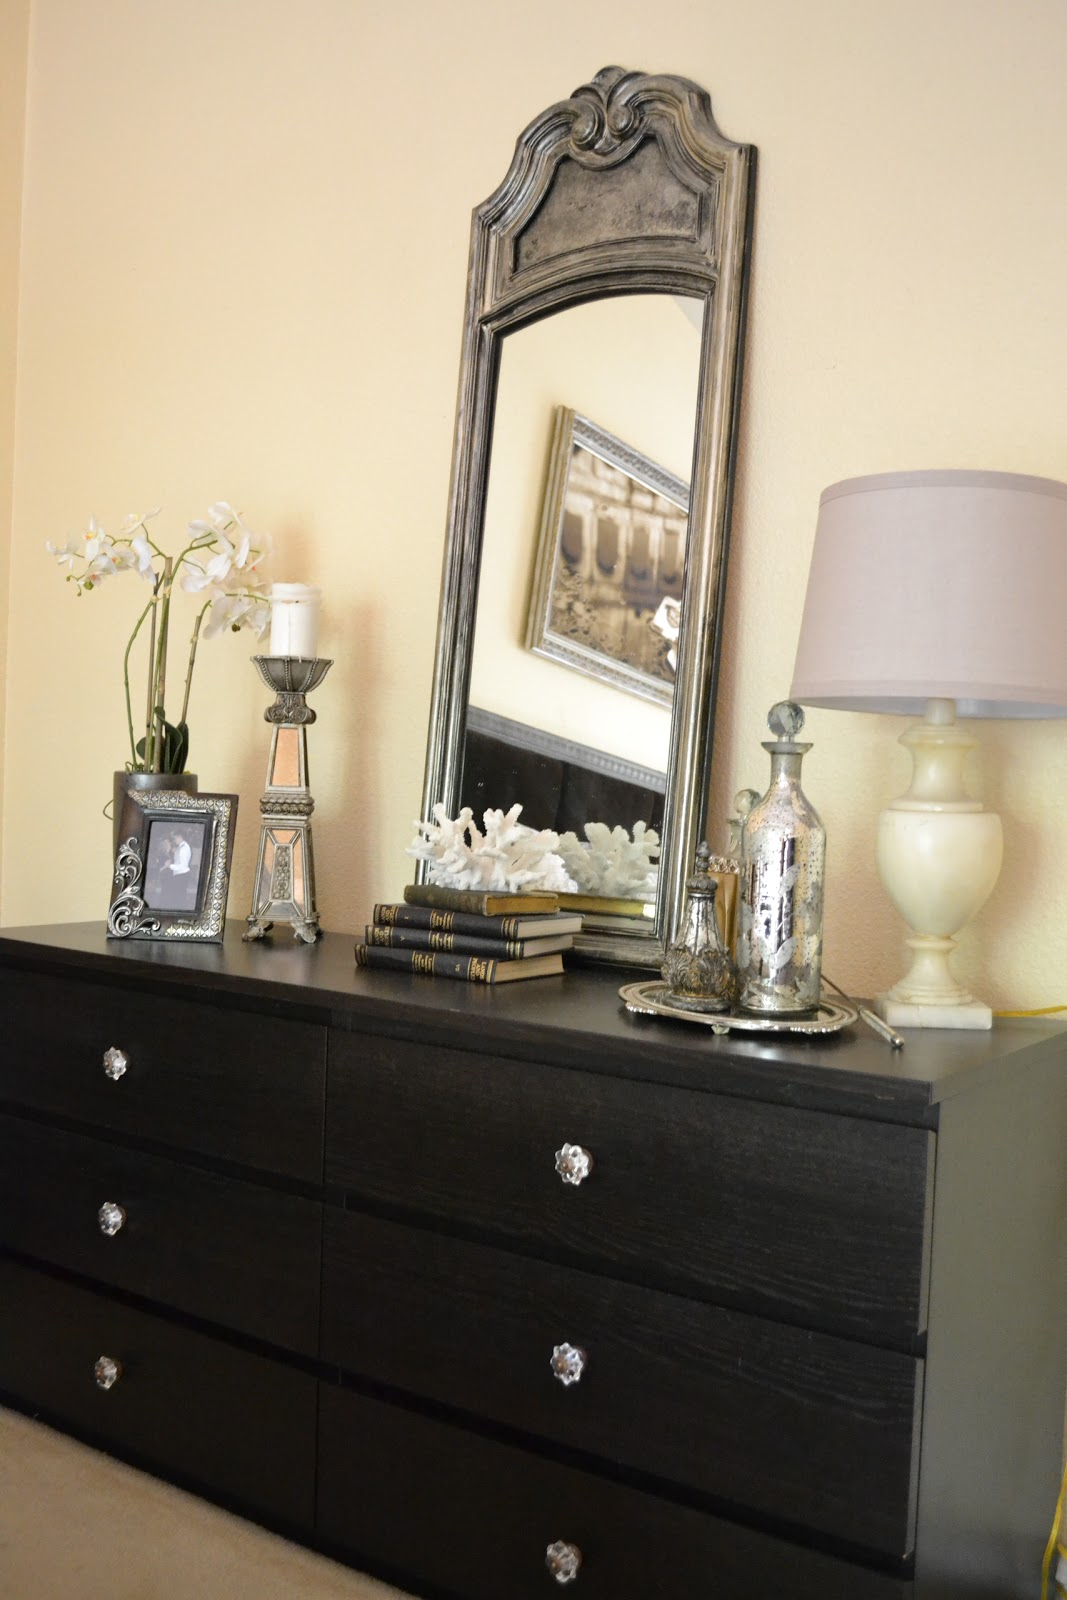 The poor sophisticate how to fancy up ikea furniture for Bedroom dresser decor